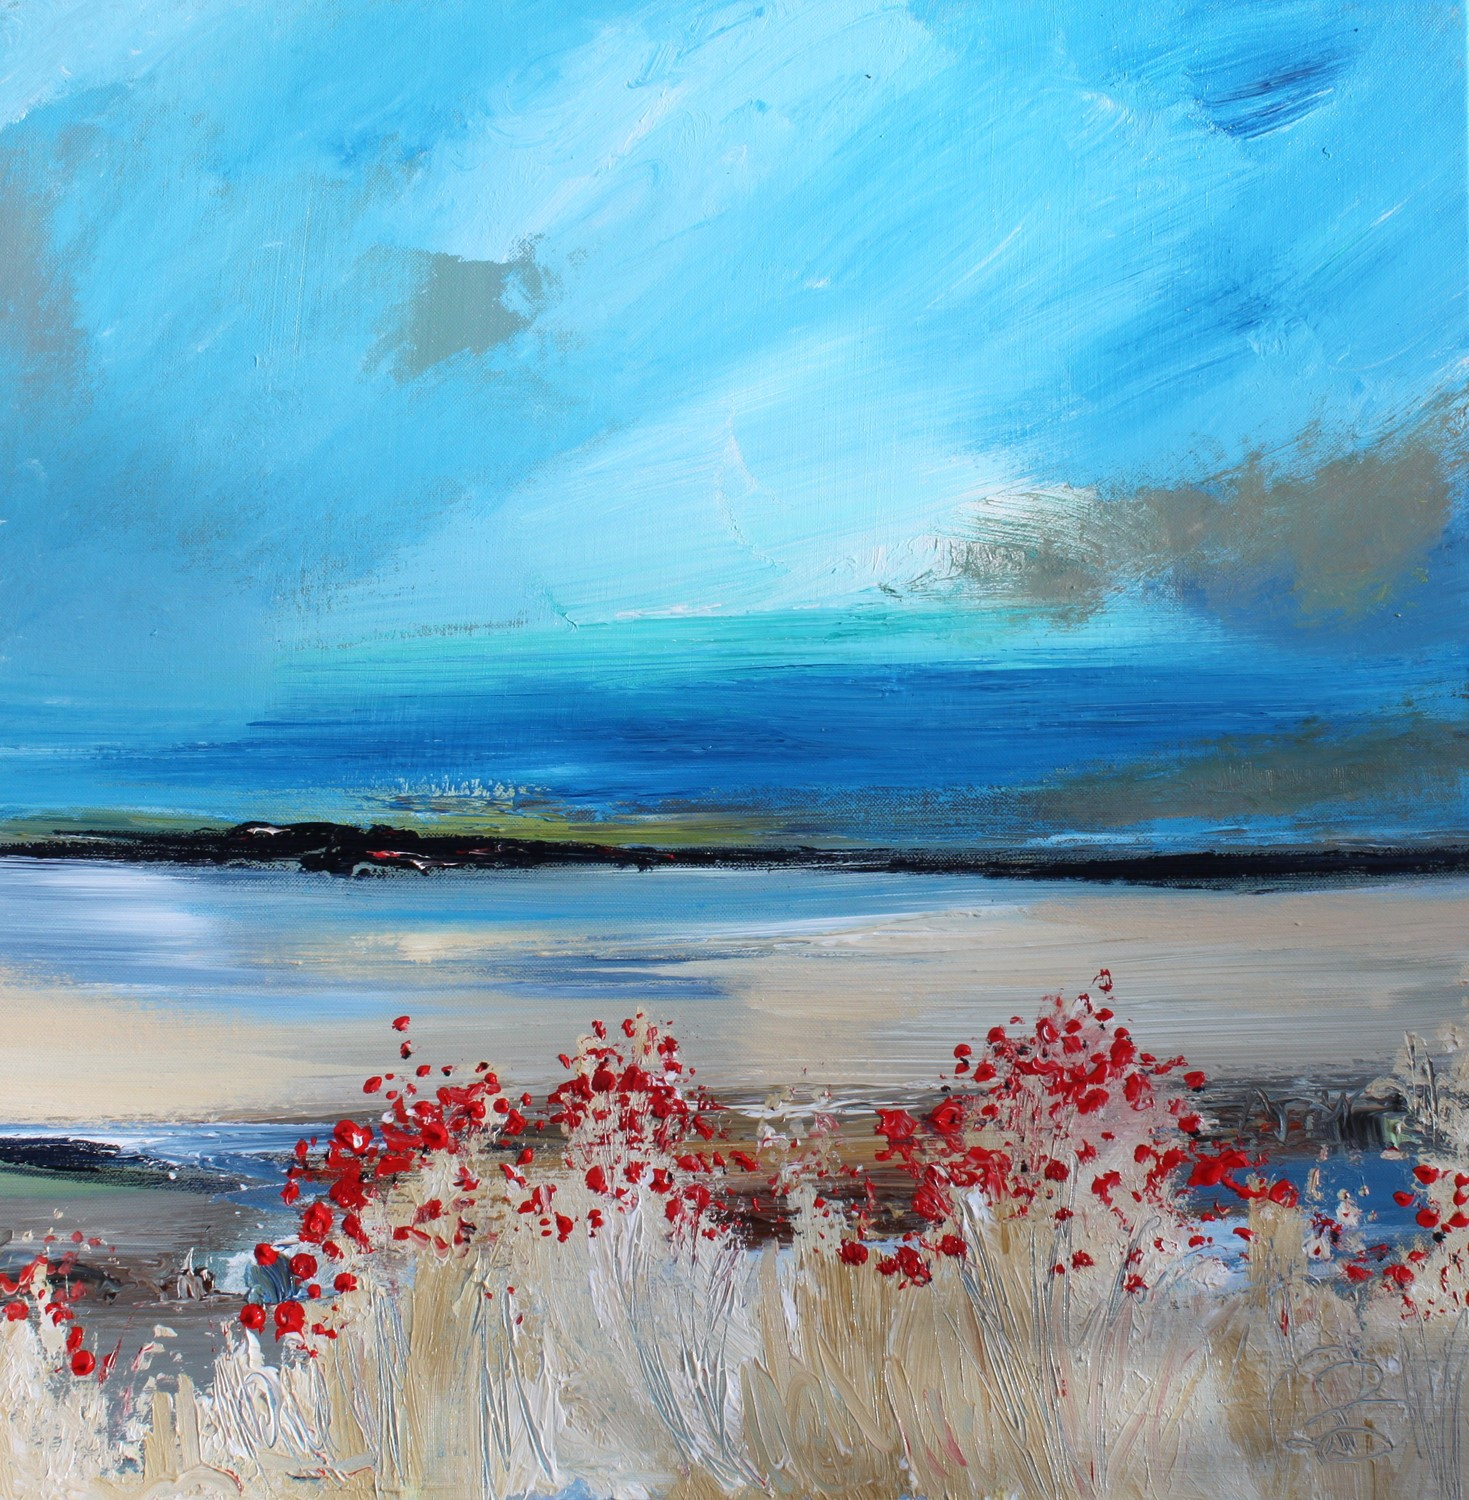 'Summer Seas' by artist Rosanne Barr